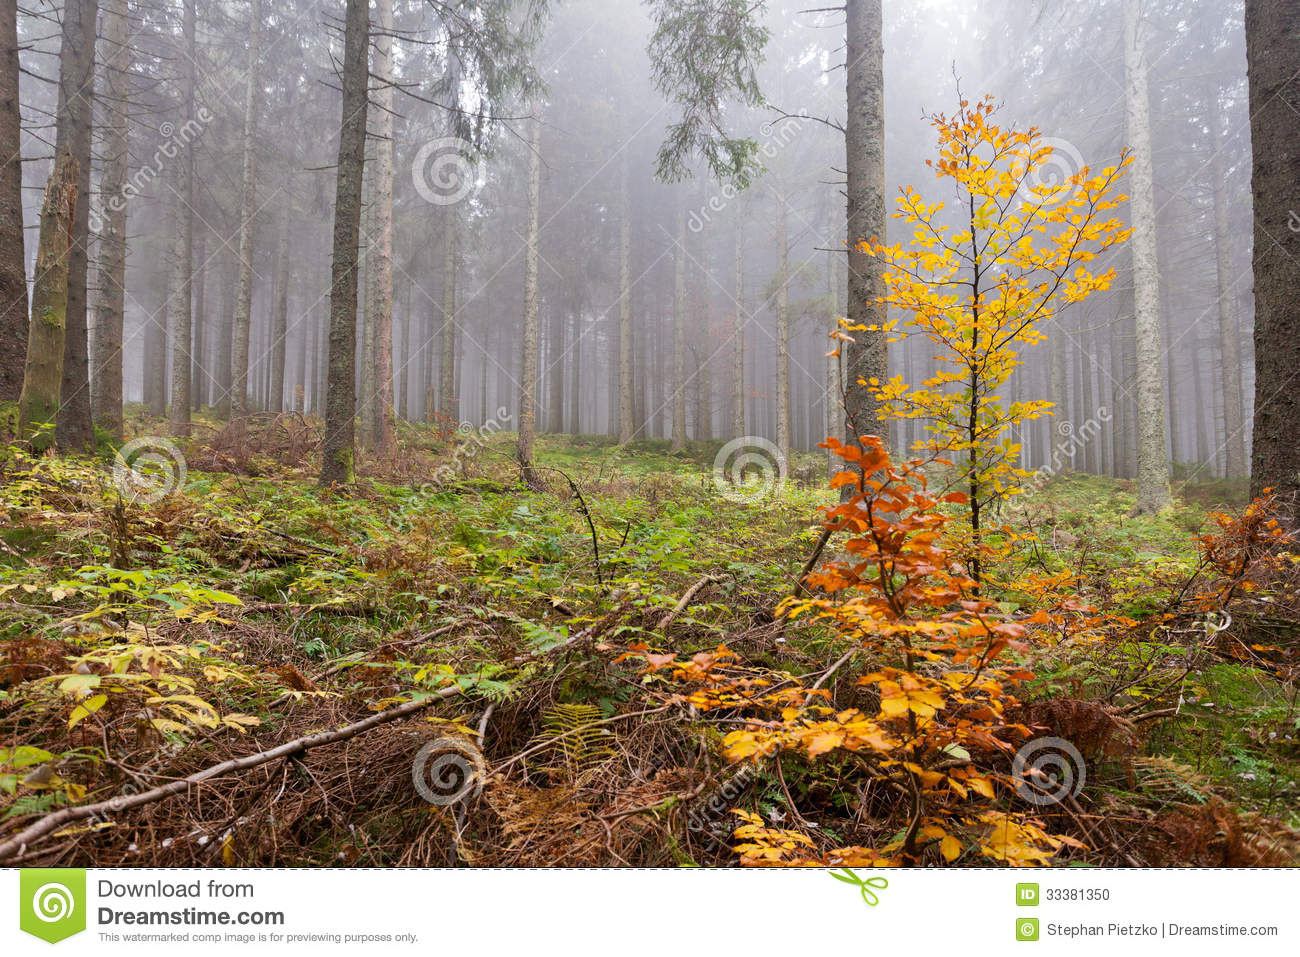 Wet And Foggy Peaceful Fall Day In The Forest With Tall Old Coniferous